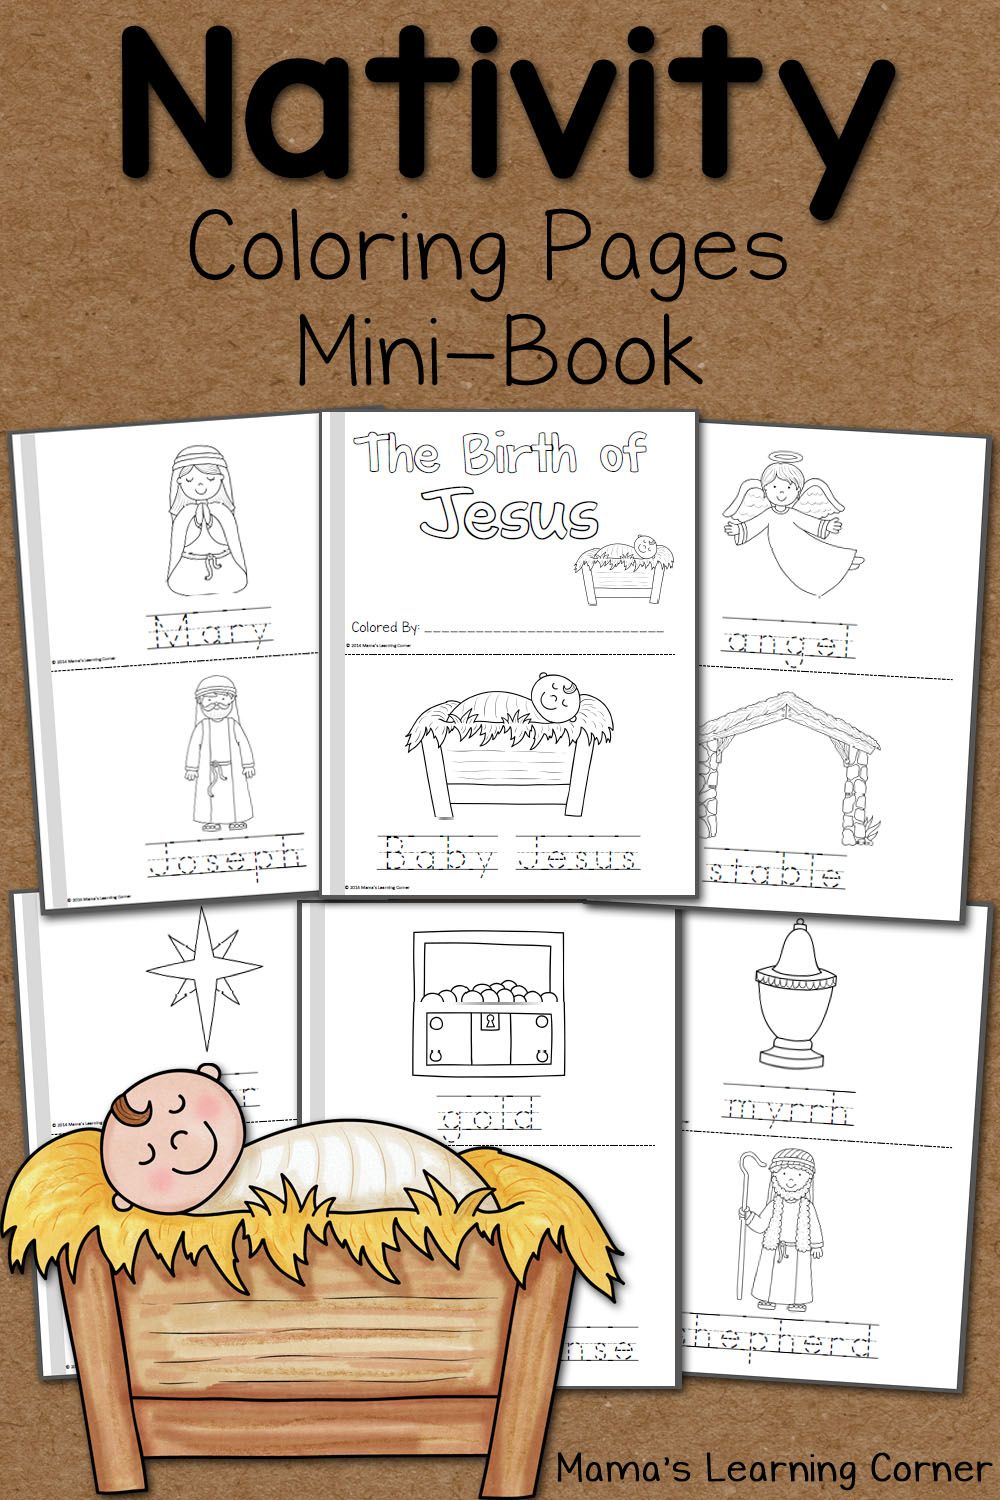 Christmas Coloring Pages Booklet With Nativity Mamas Learning Corner